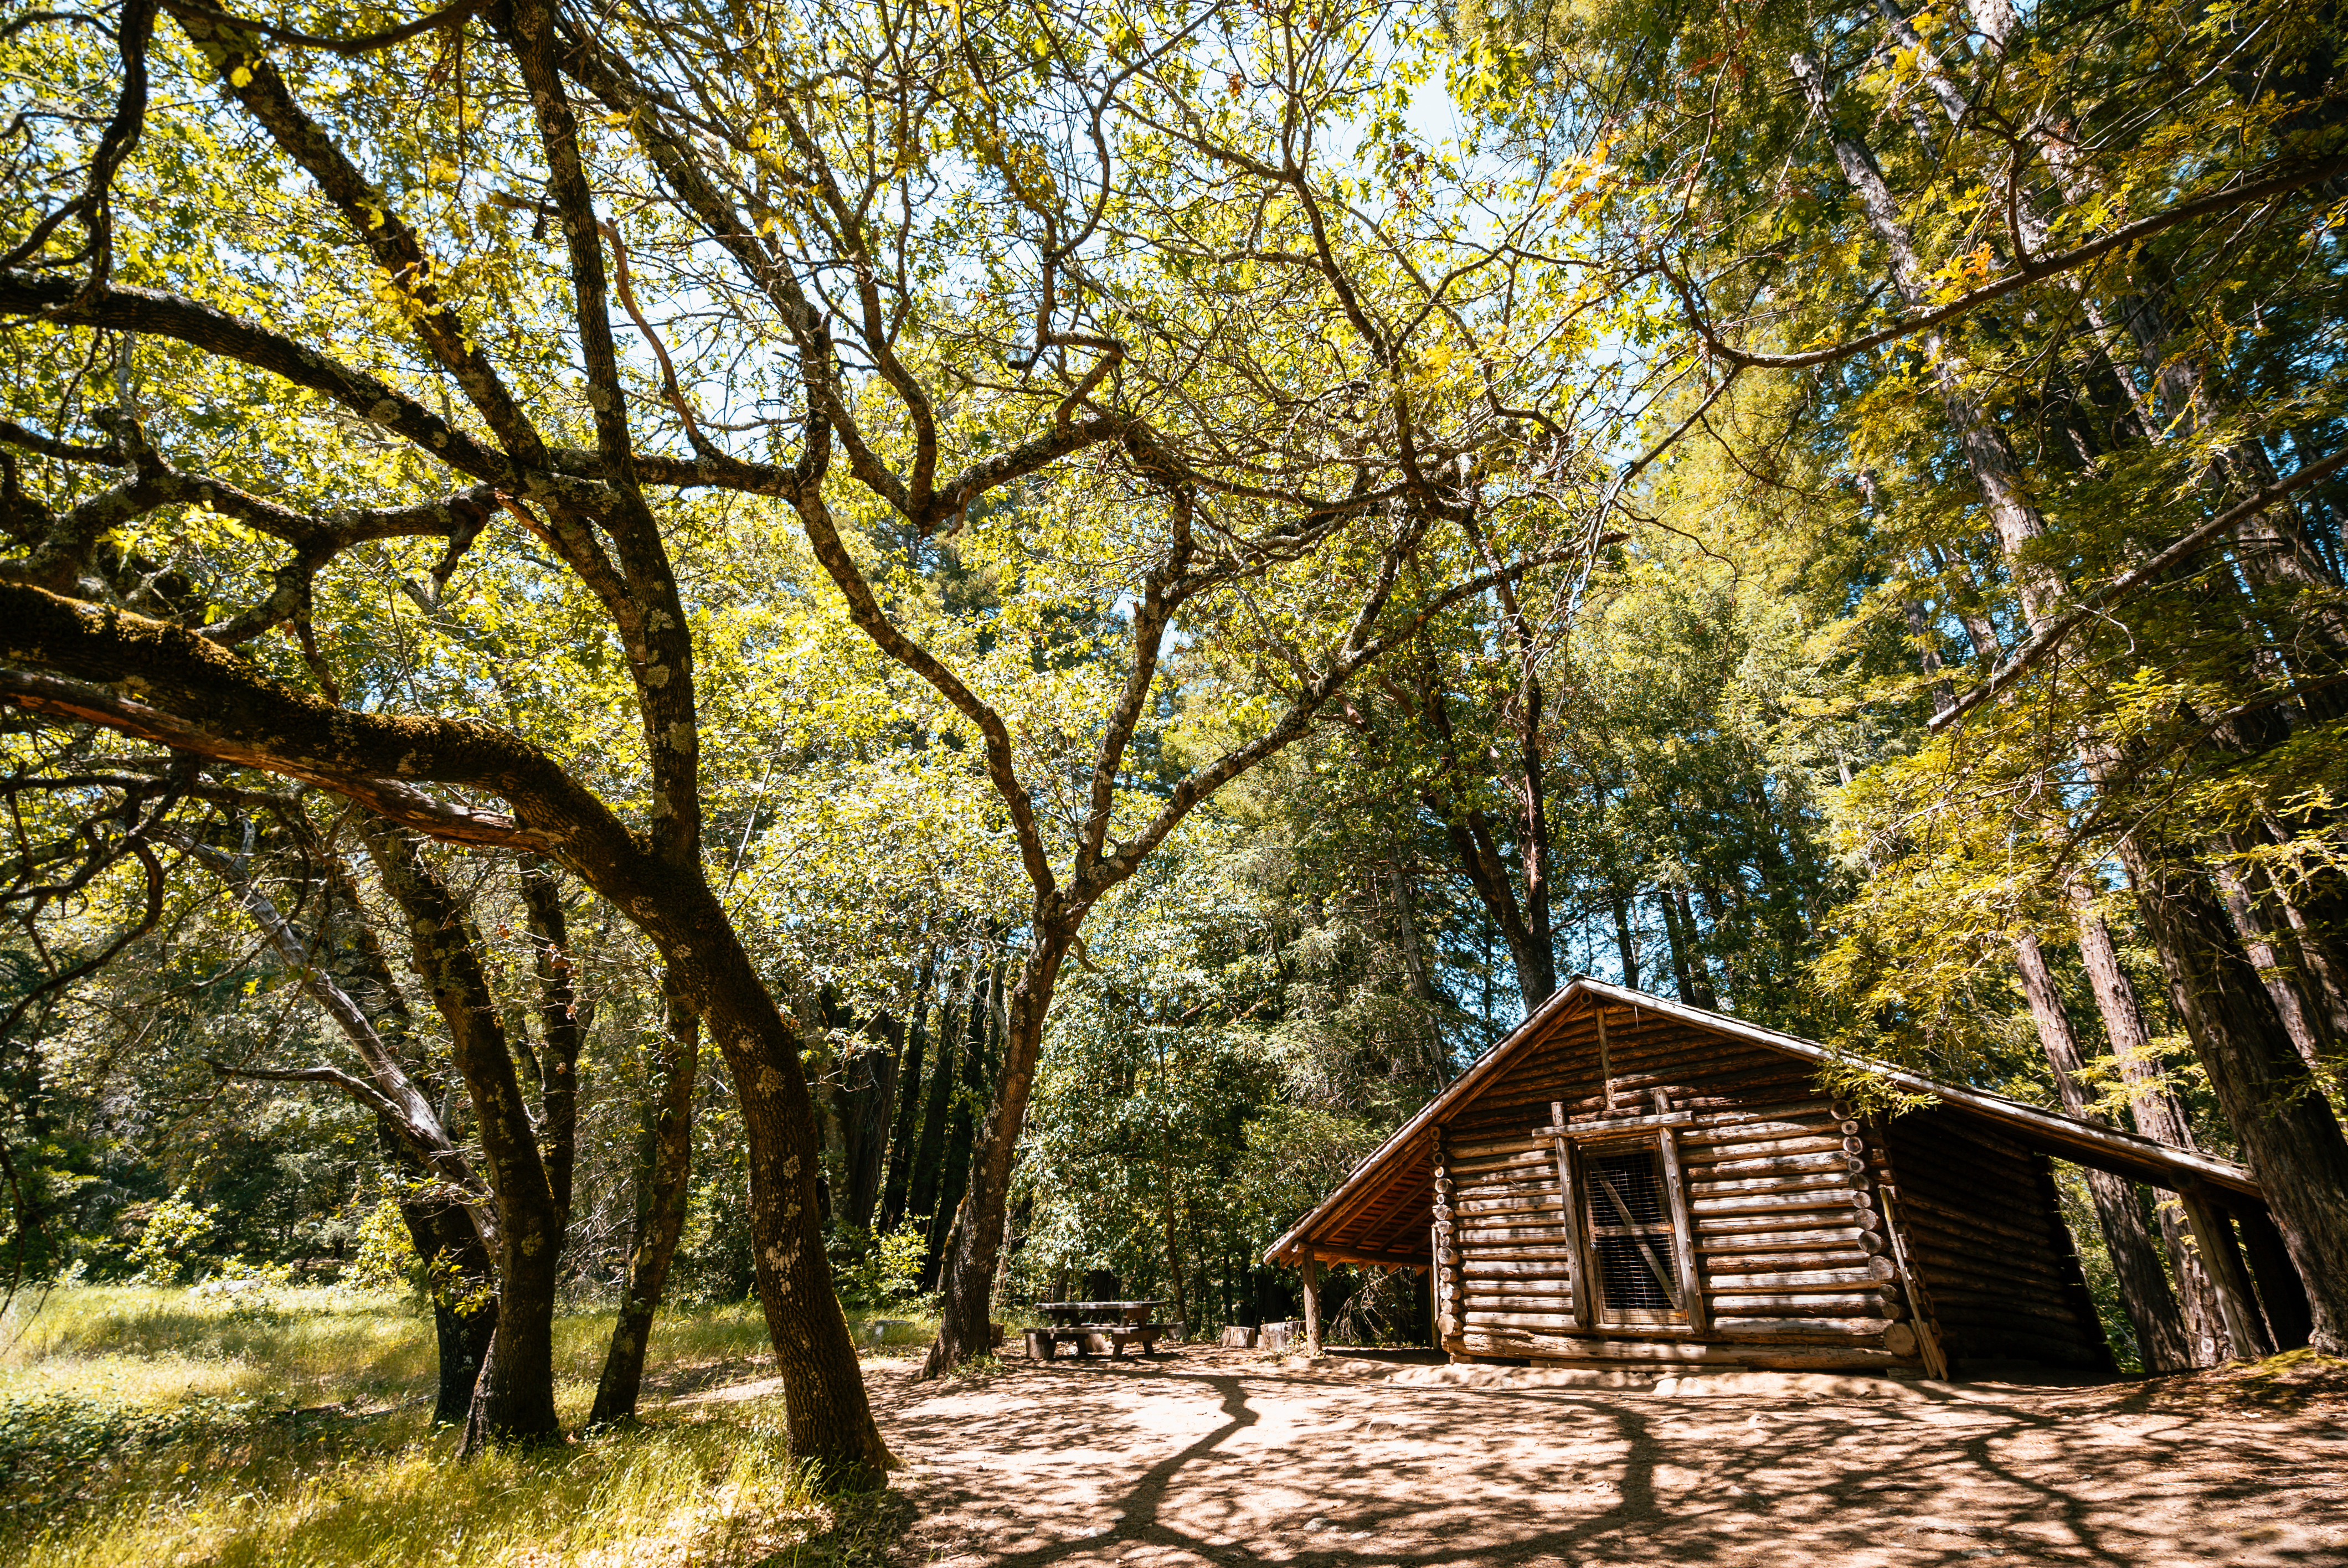 Forest Bathing at Jack London State Historic Park, Glen Ellen, Sonoma County, California